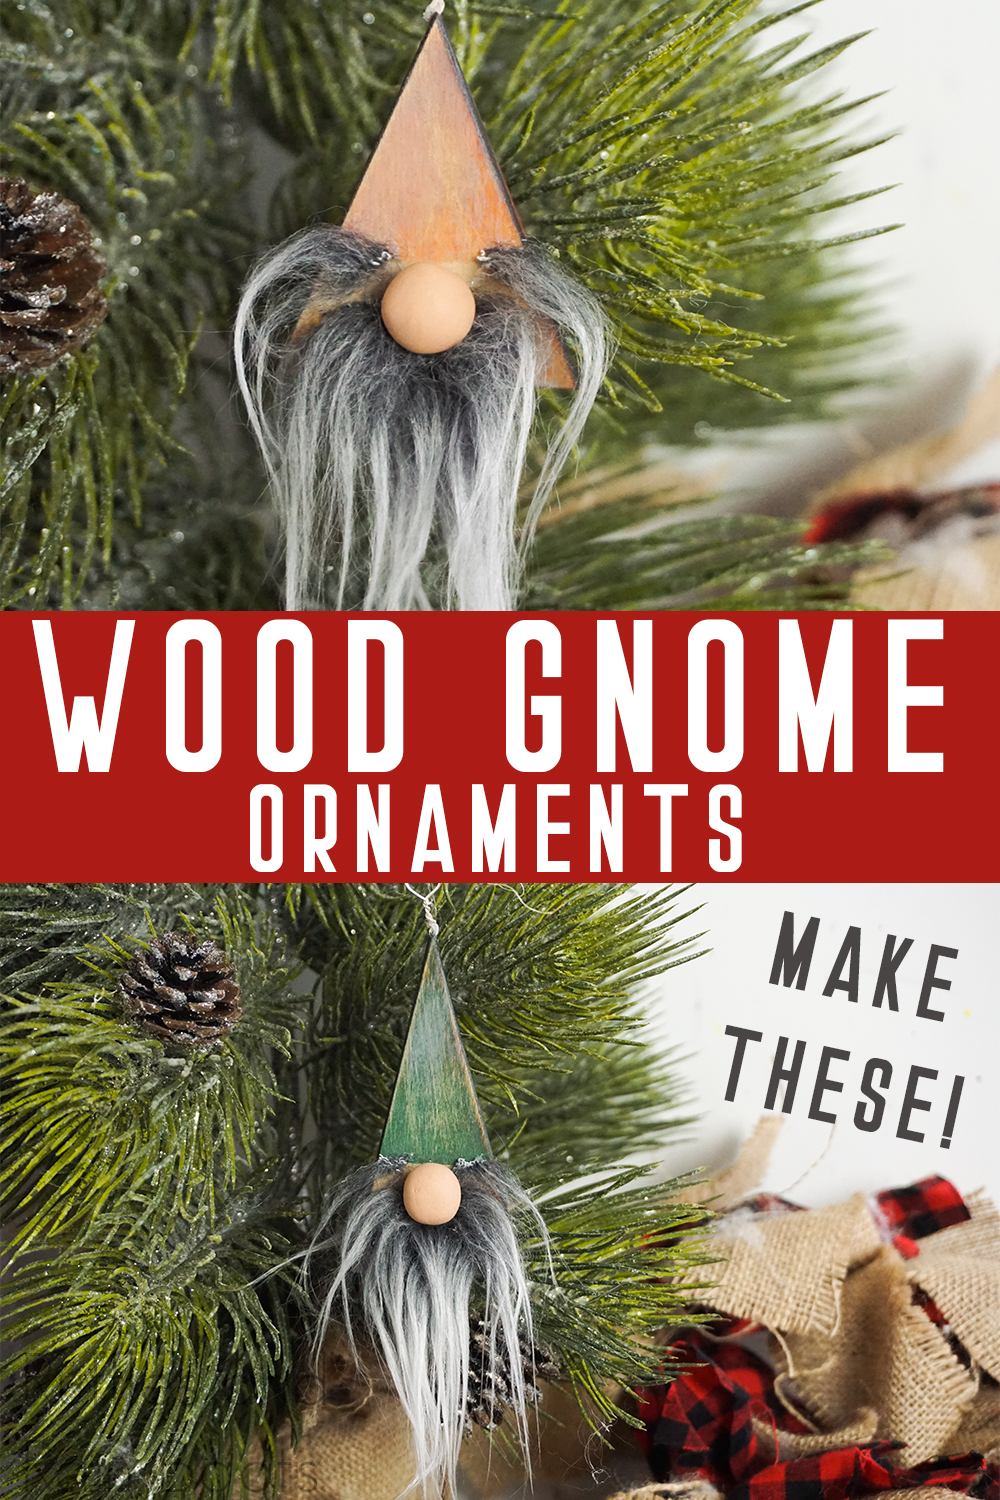 photo collage of christmas ornaments made from wood with text which reads wood gnome ornaments make these!